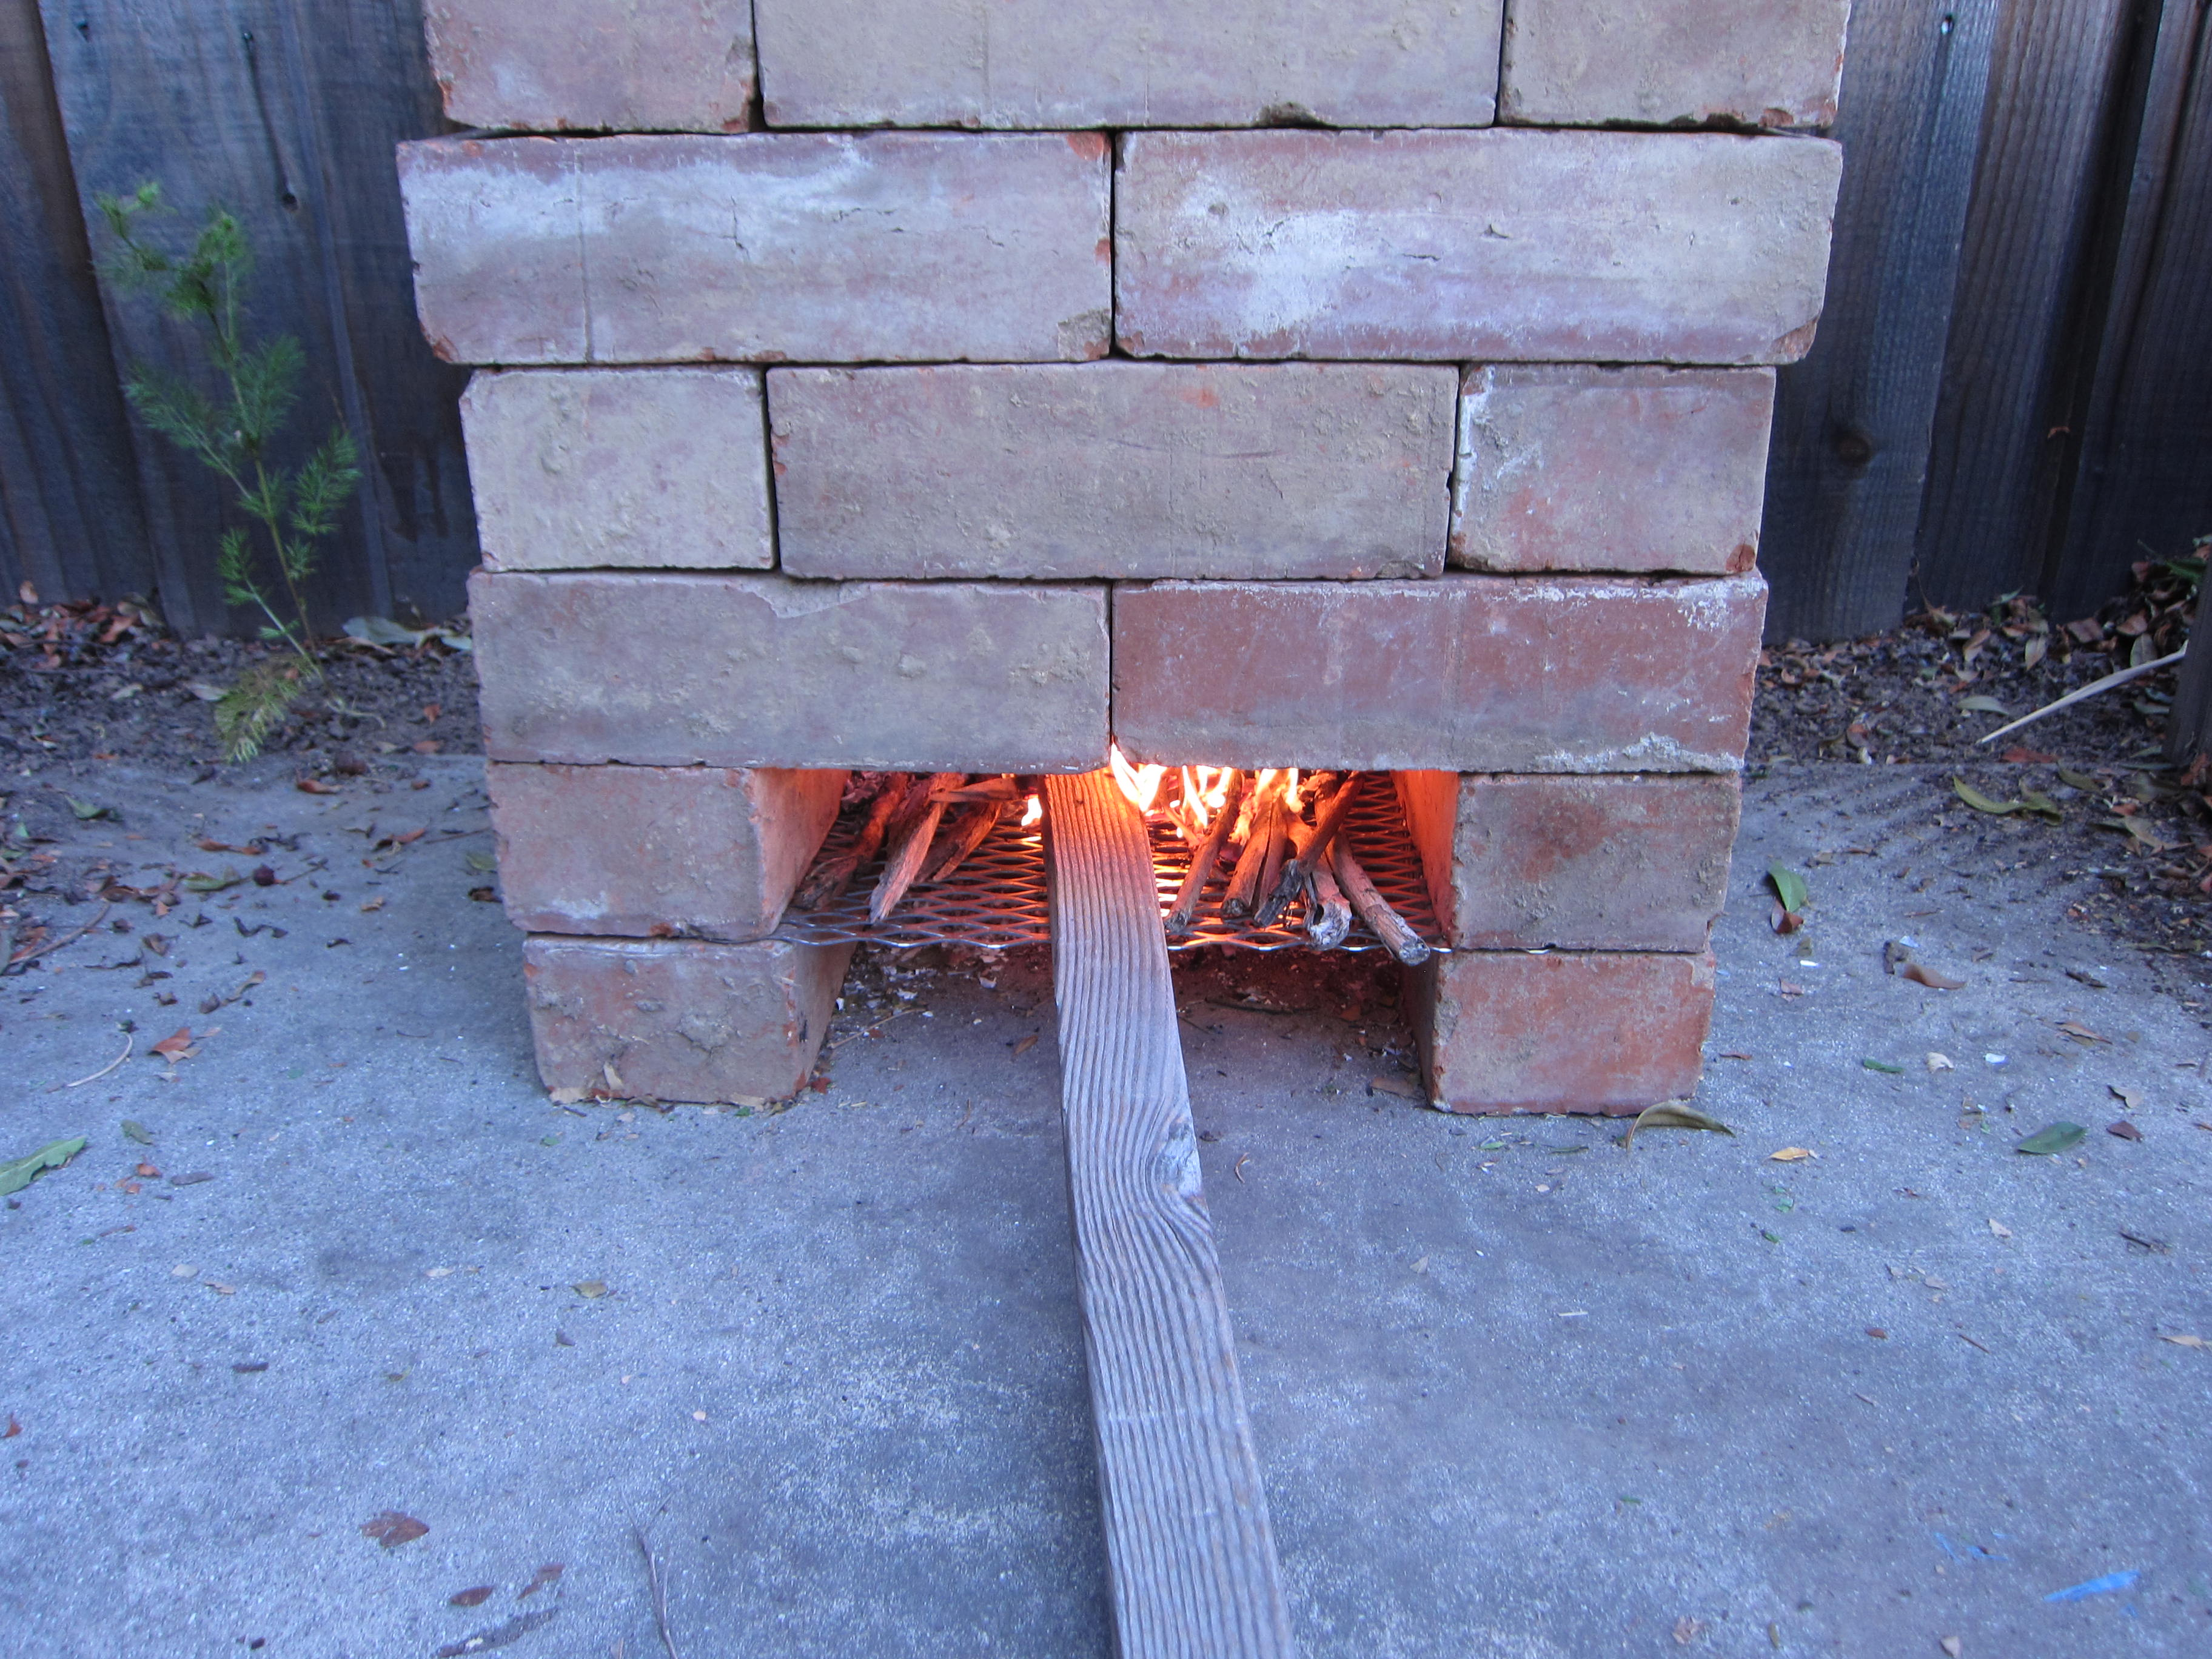 Once the coals catch fire, we started feeding in larger pieces of wood.